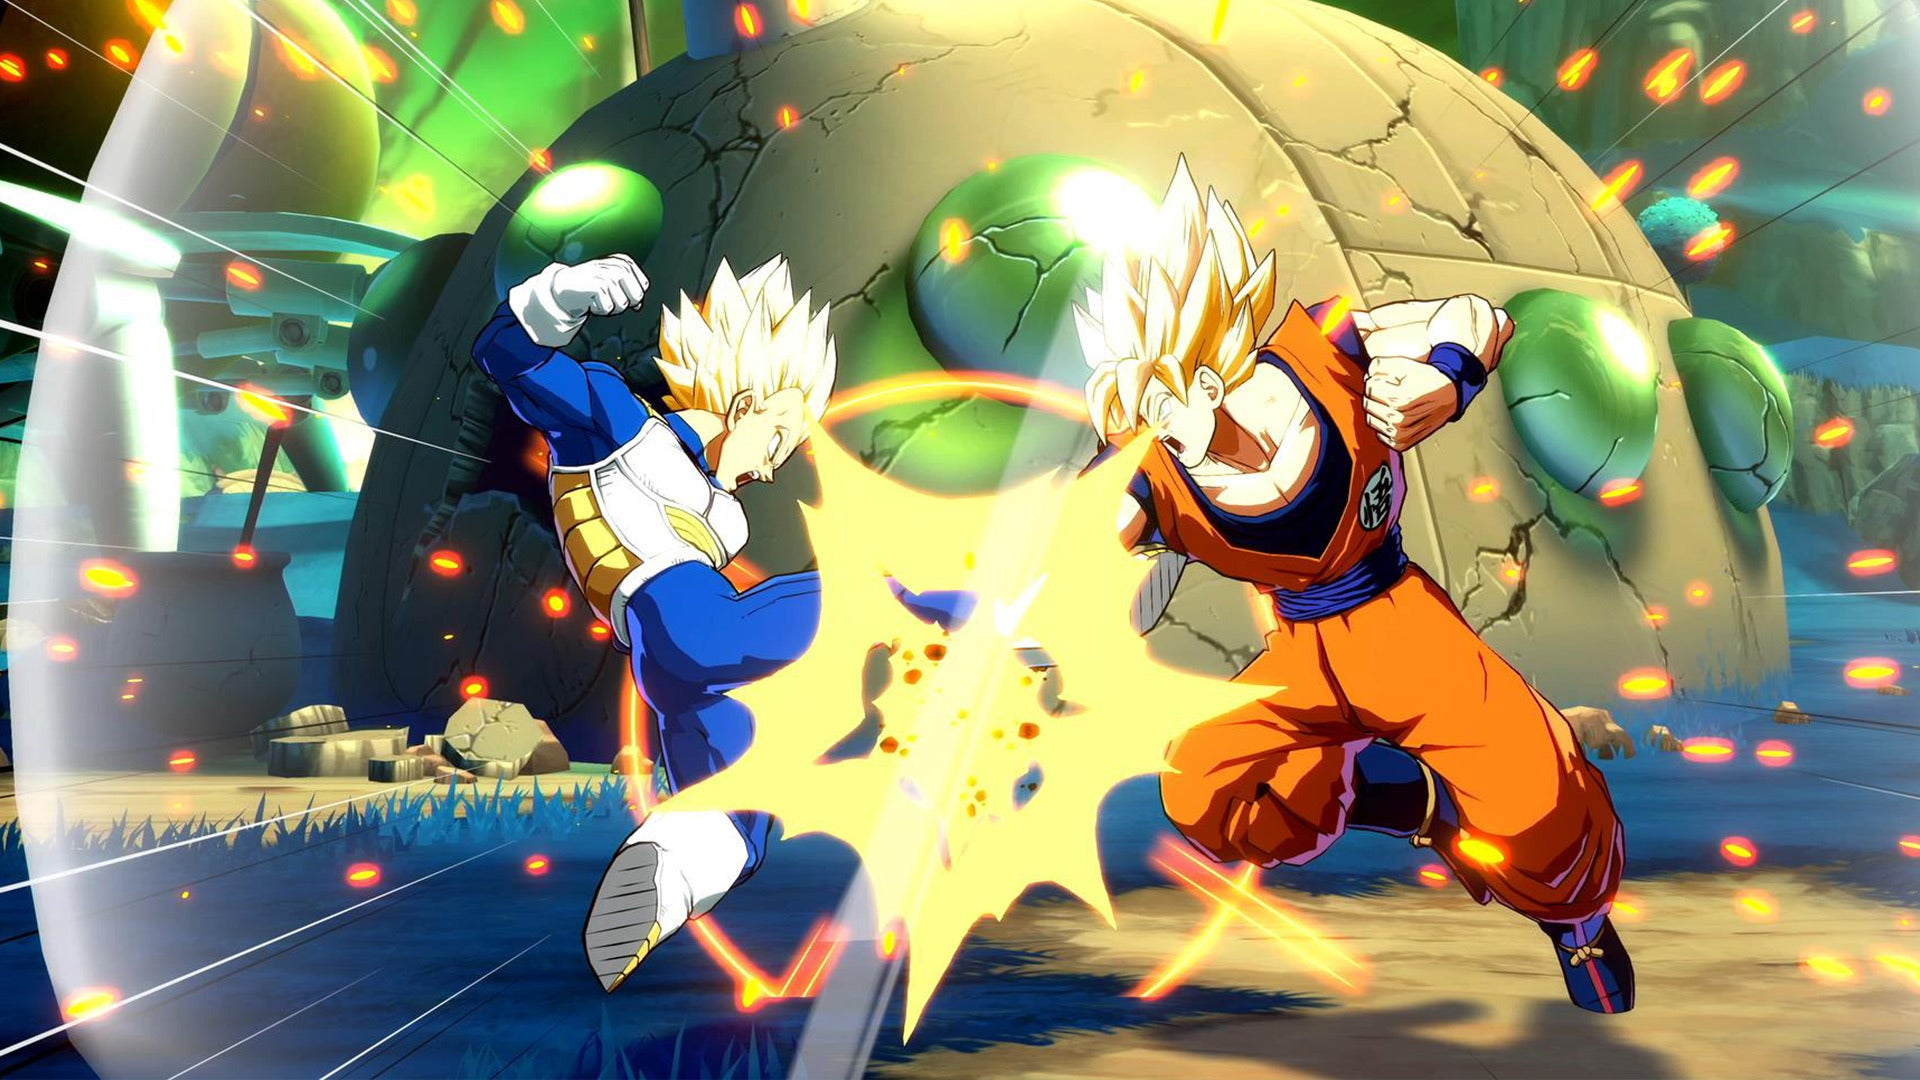 Best Fighting Games: All the best brawlers you can play right now